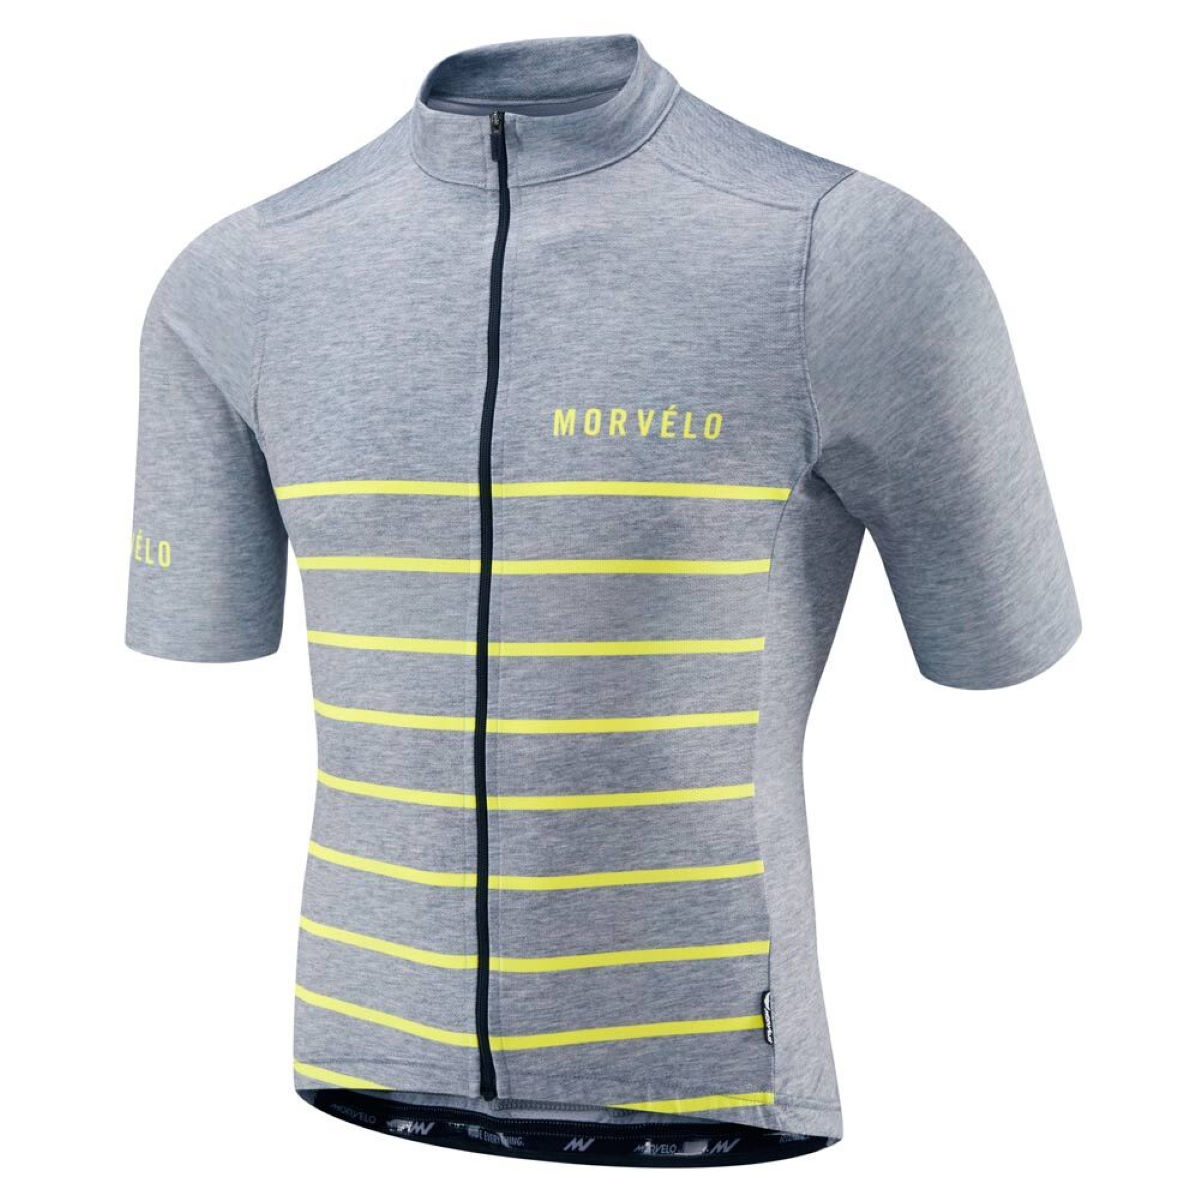 Maillot Morvelo Marley (manches courtes) - S Marley